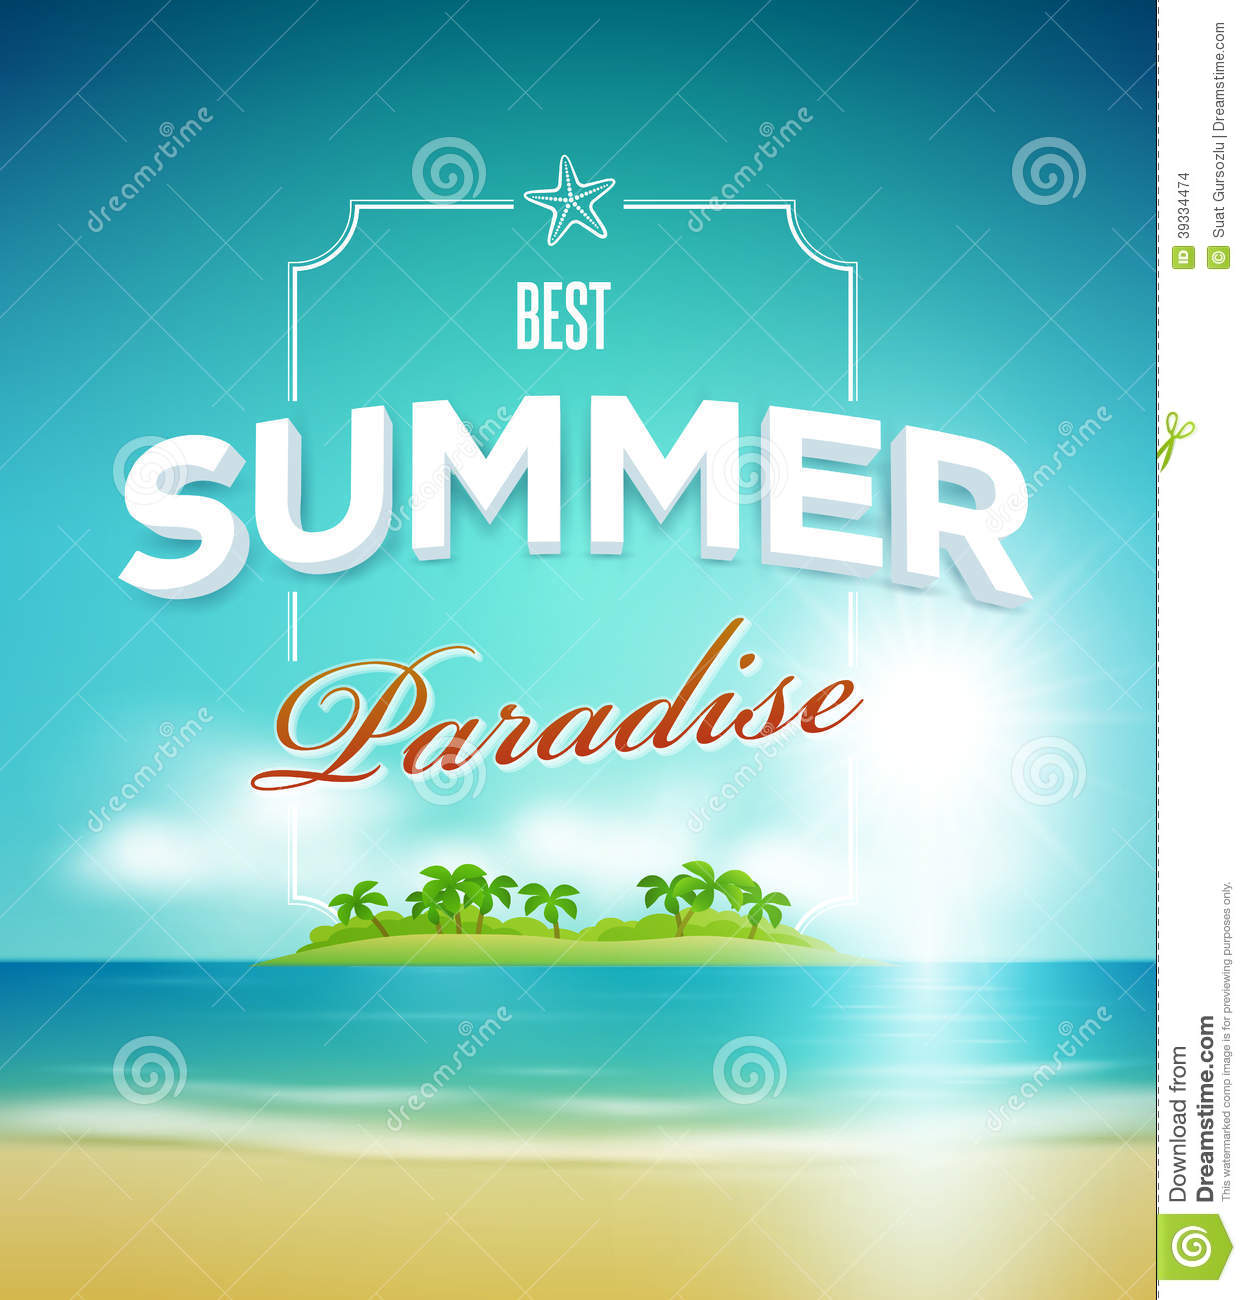 Poster design vector download - Design Paradise Poster